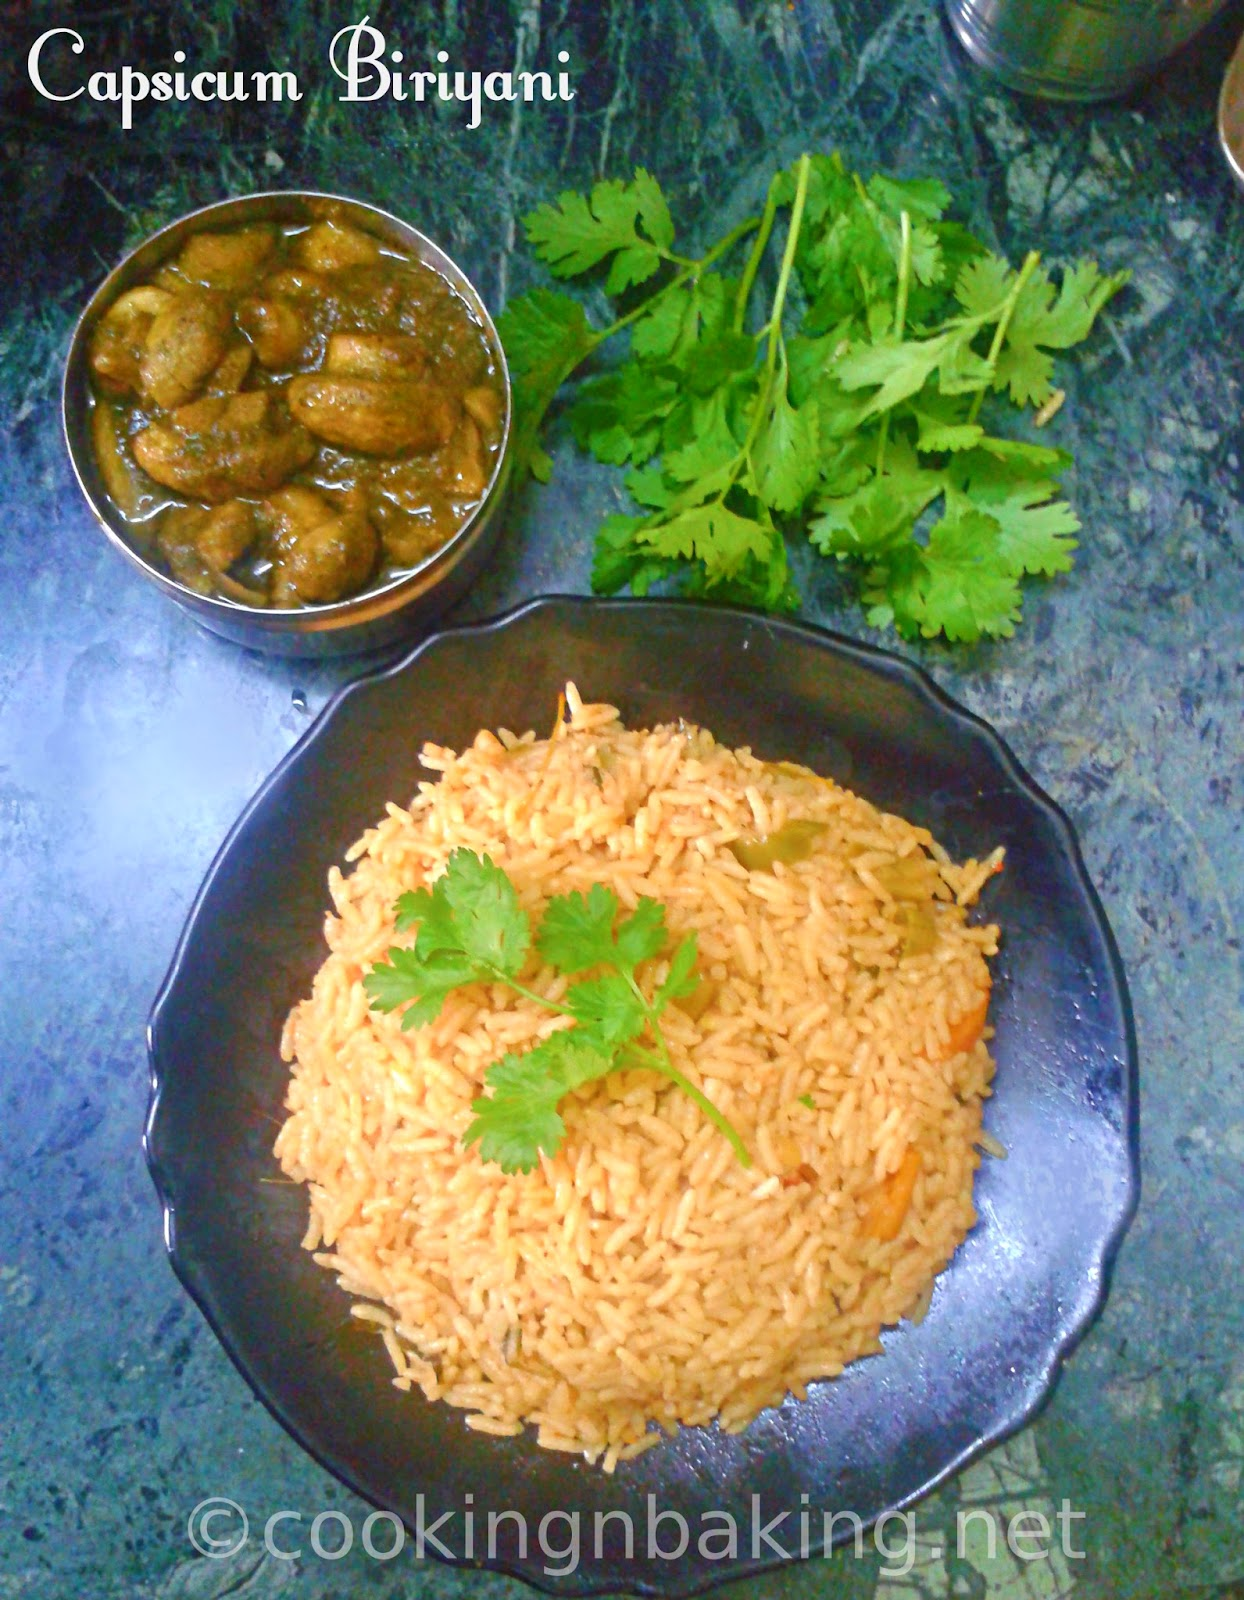 Capsicum Biriyani | How to make Capsicum Biriyani